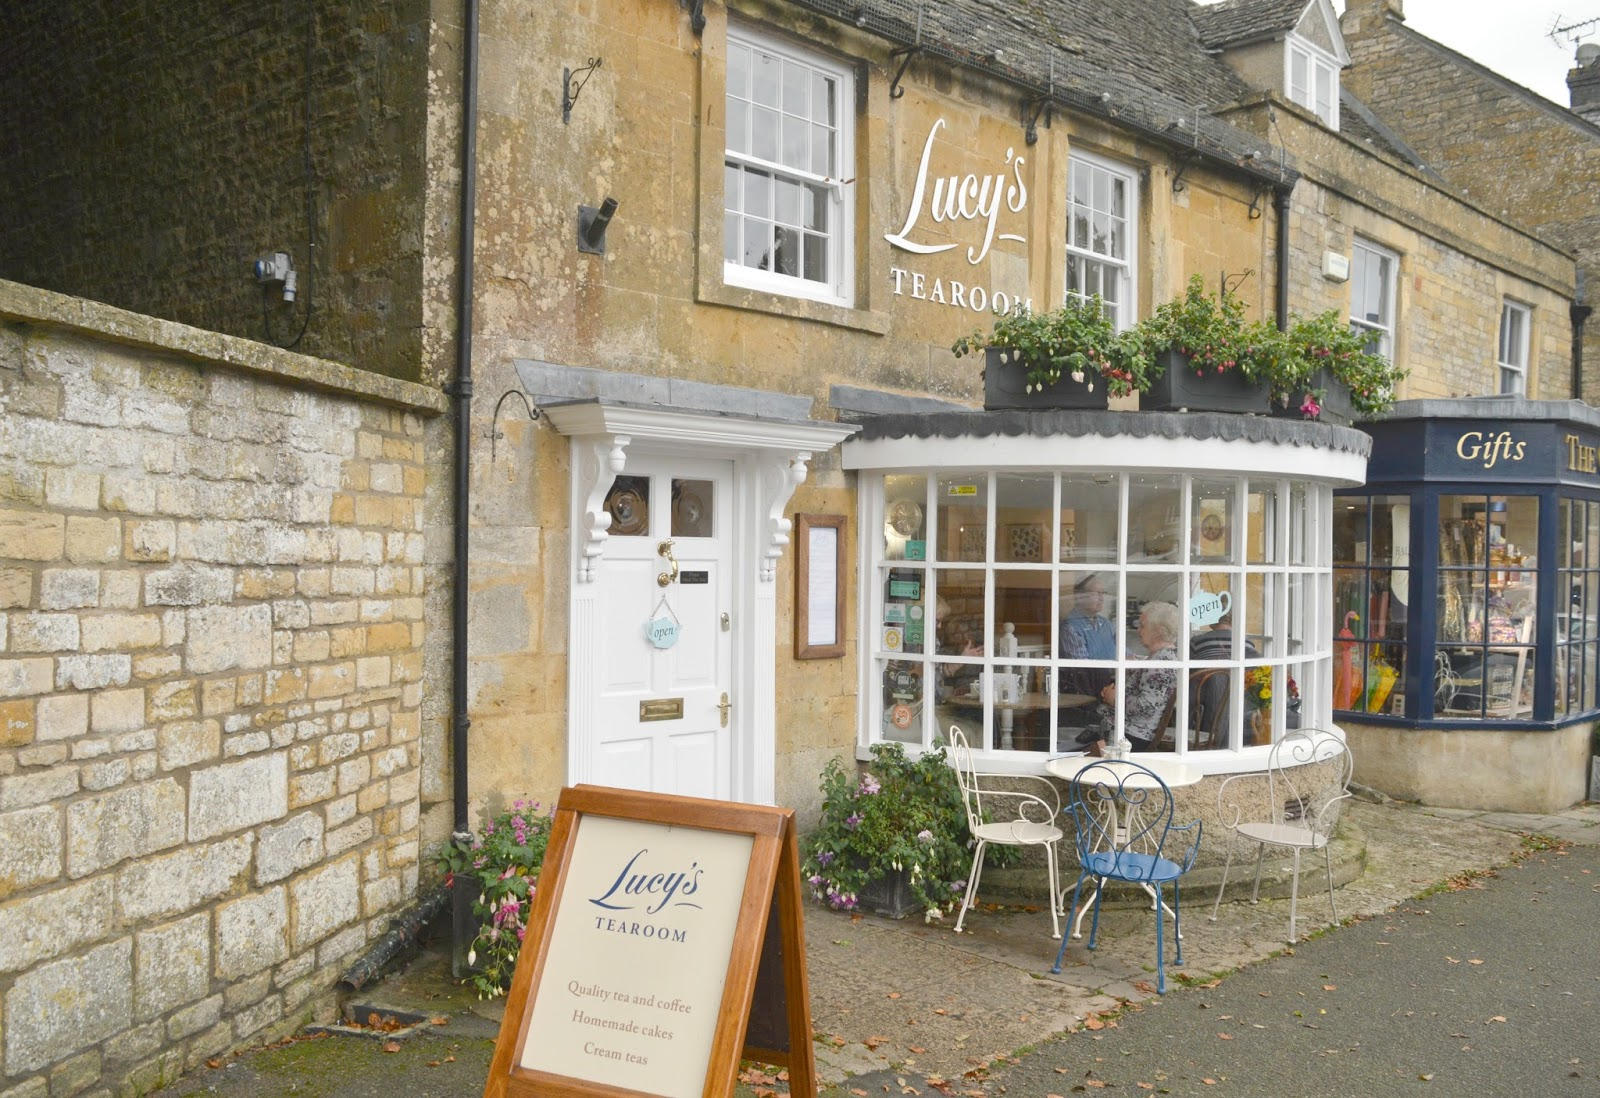 Spend a day in the Cotswolds